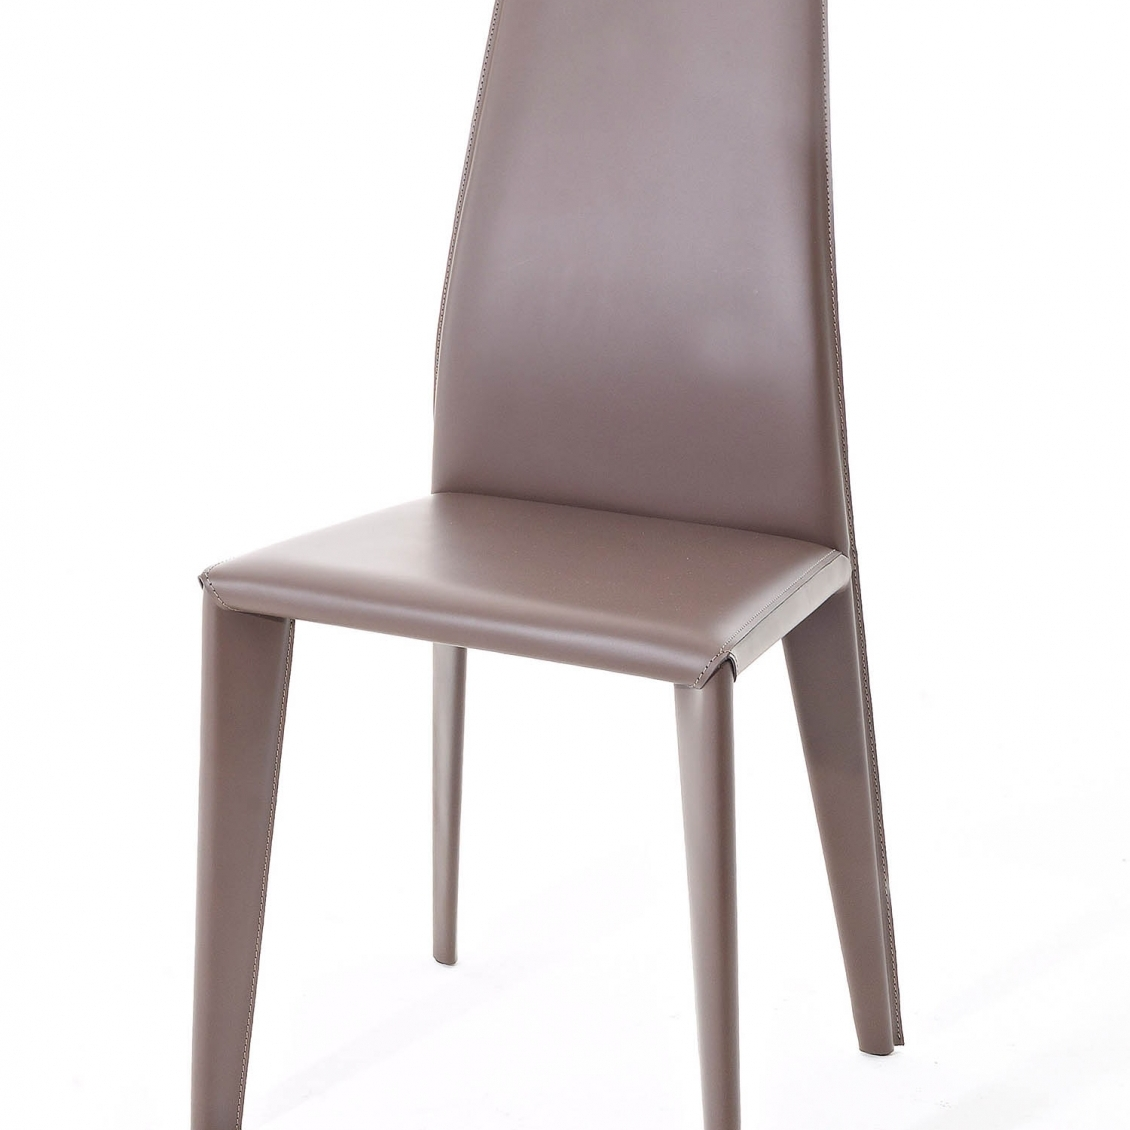 Chair with steel frame fully upholstered with hide. Contrasting stitching, on request. Of the same collection Karla.p armchair.